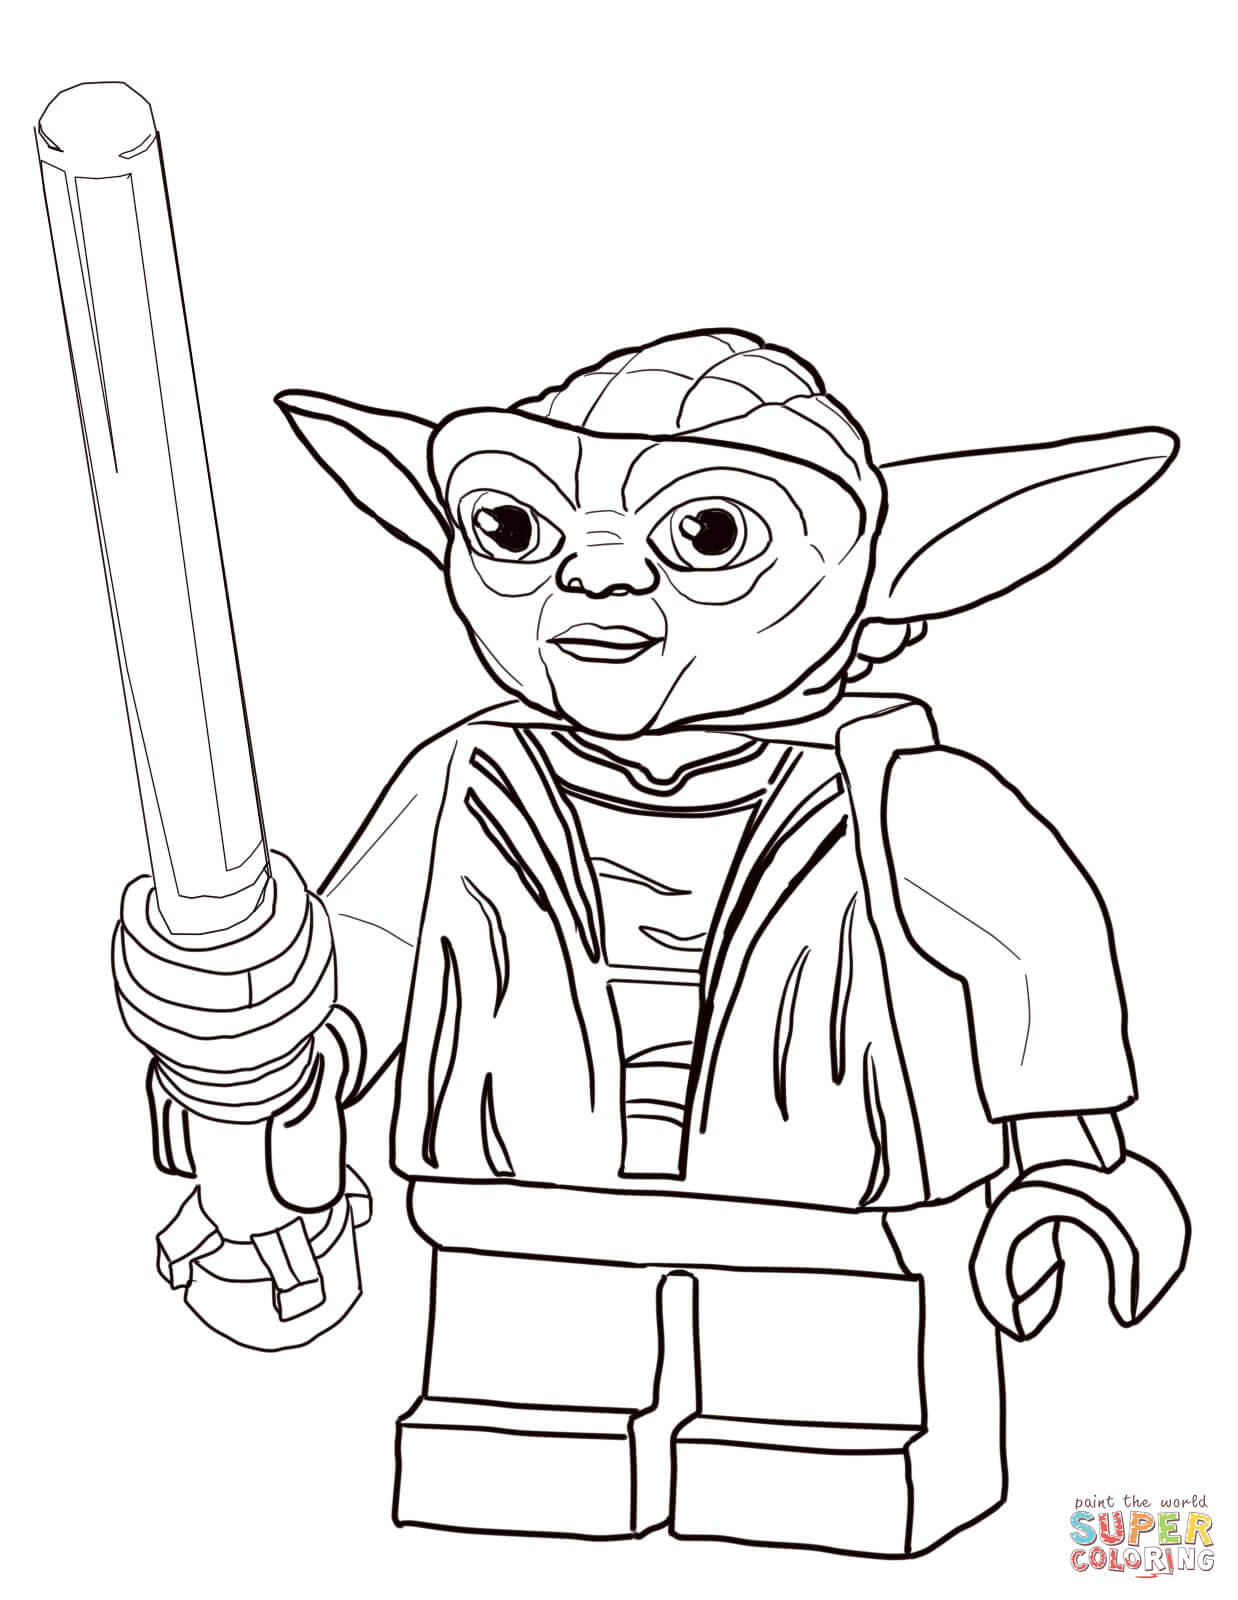 Lego Star Wars coloring pages | Free Coloring Pages